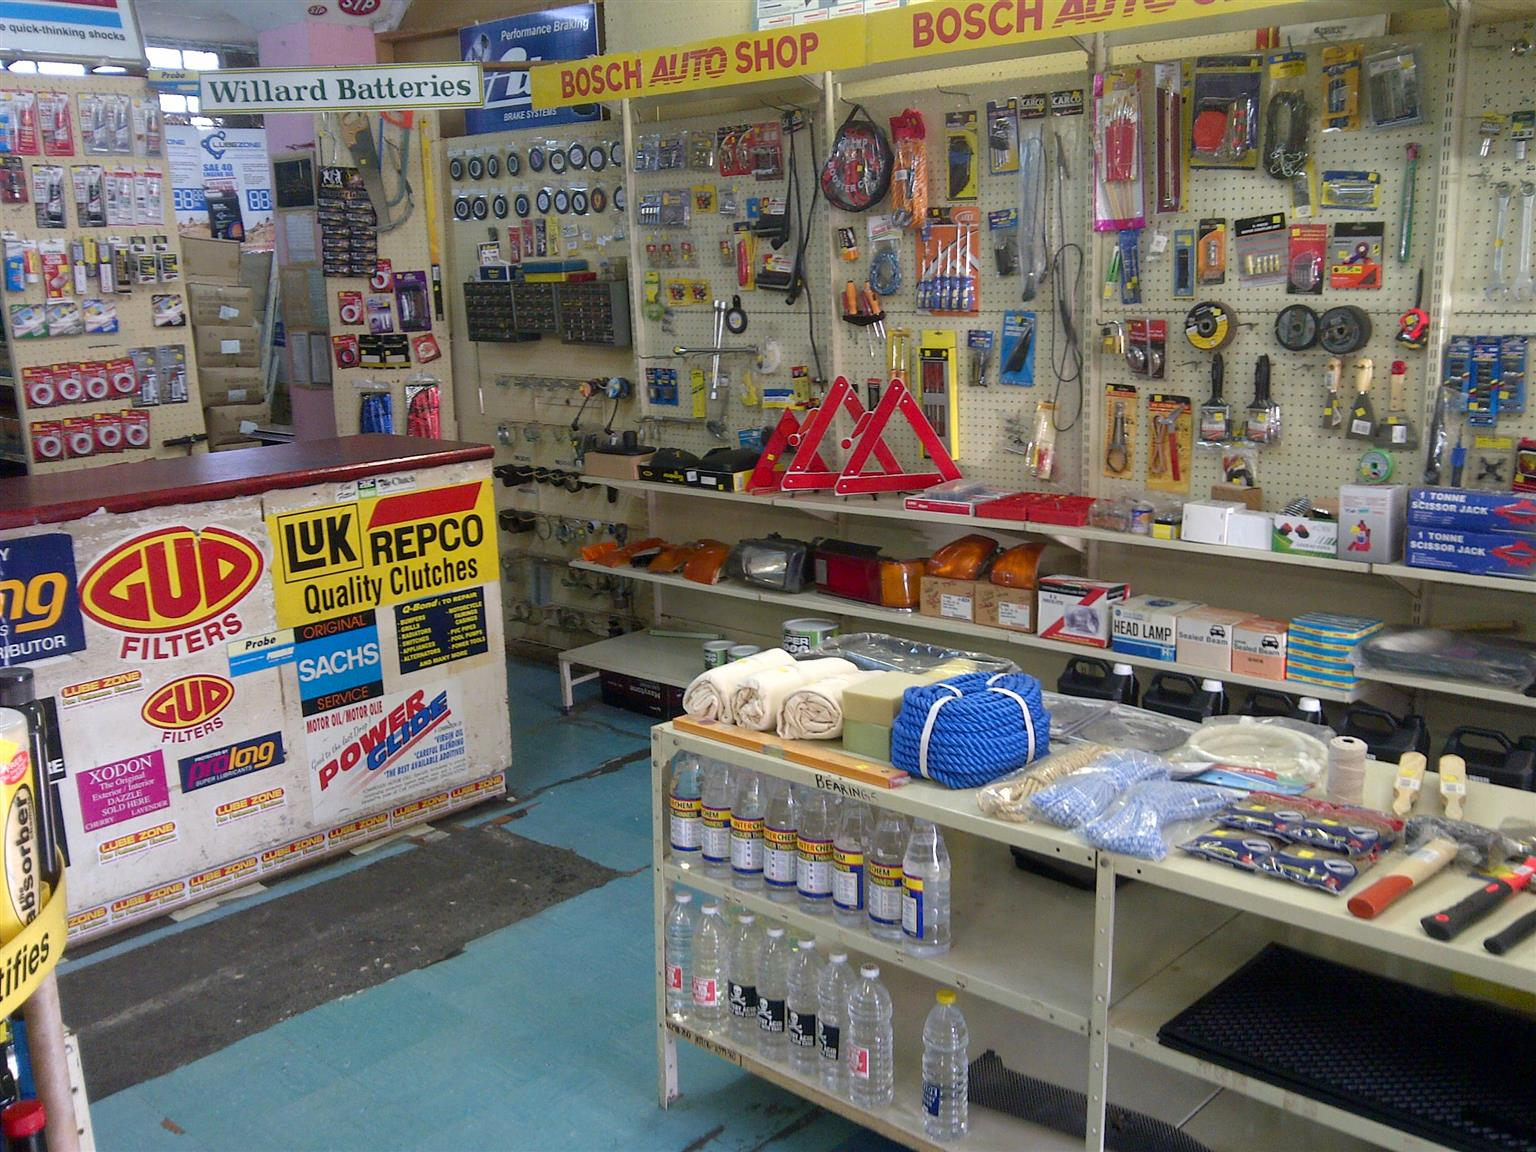 Motor spares accessories amd tools